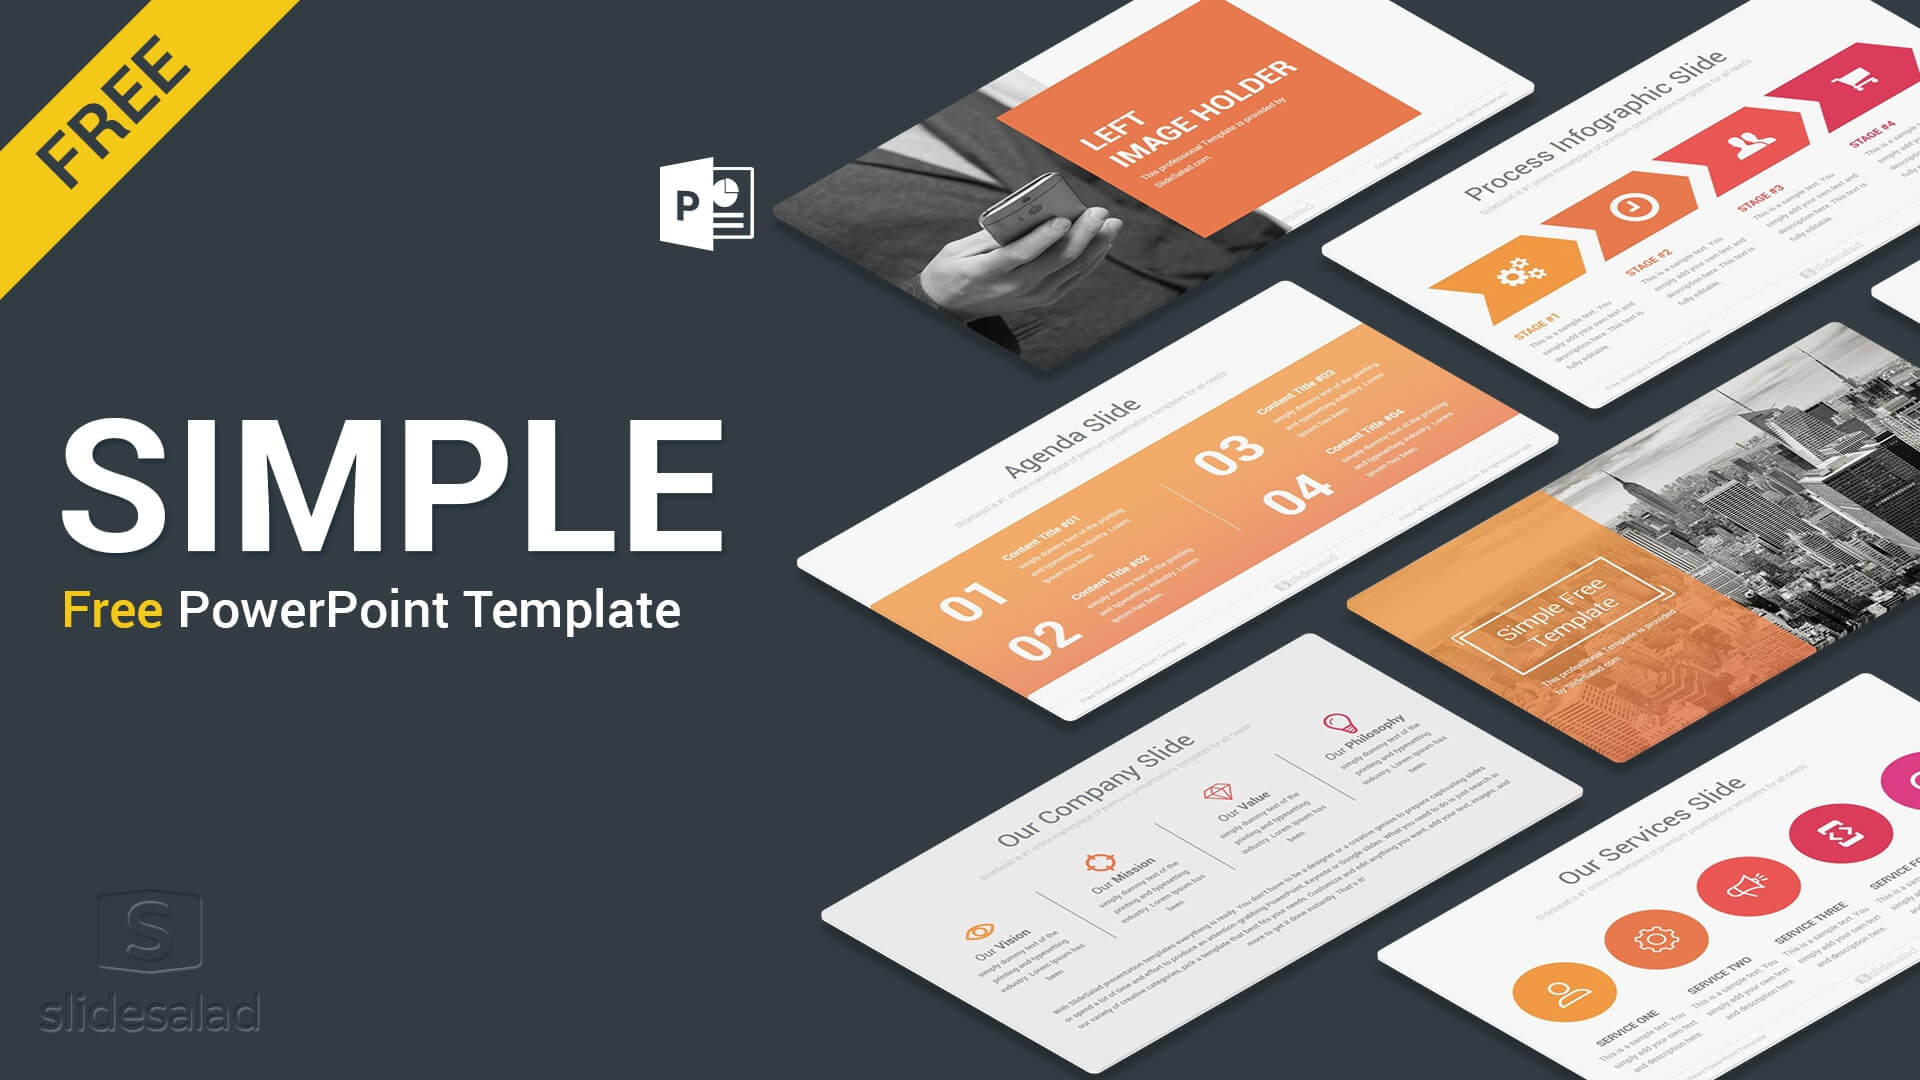 Simple Free Powerpoint Presentation Template - Free Download inside Free Powerpoint Presentation Templates Downloads